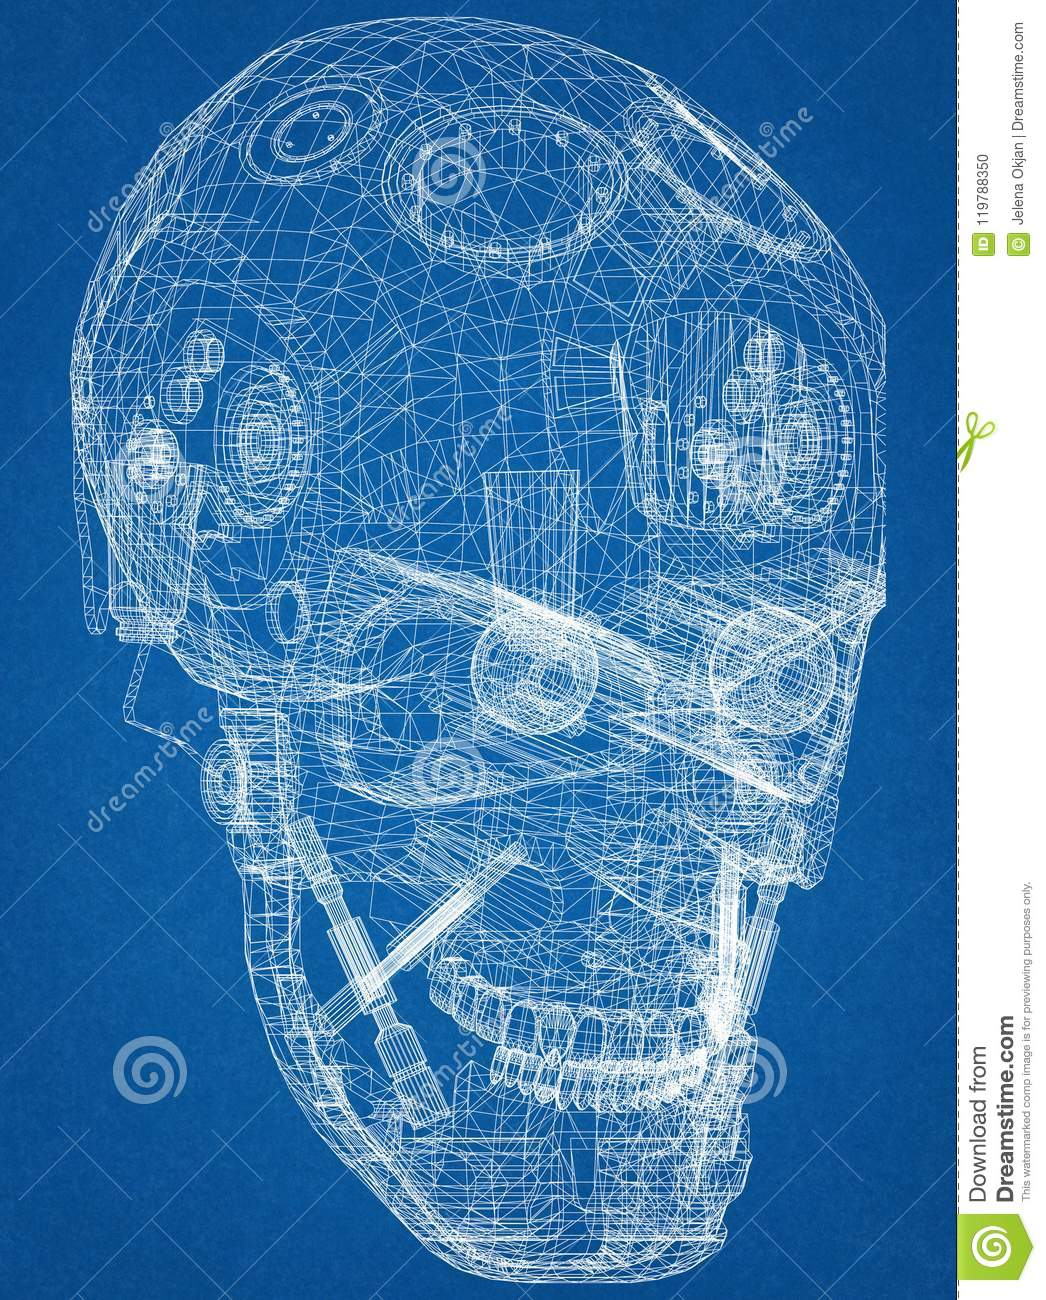 Robot Head Design Architect Blueprint